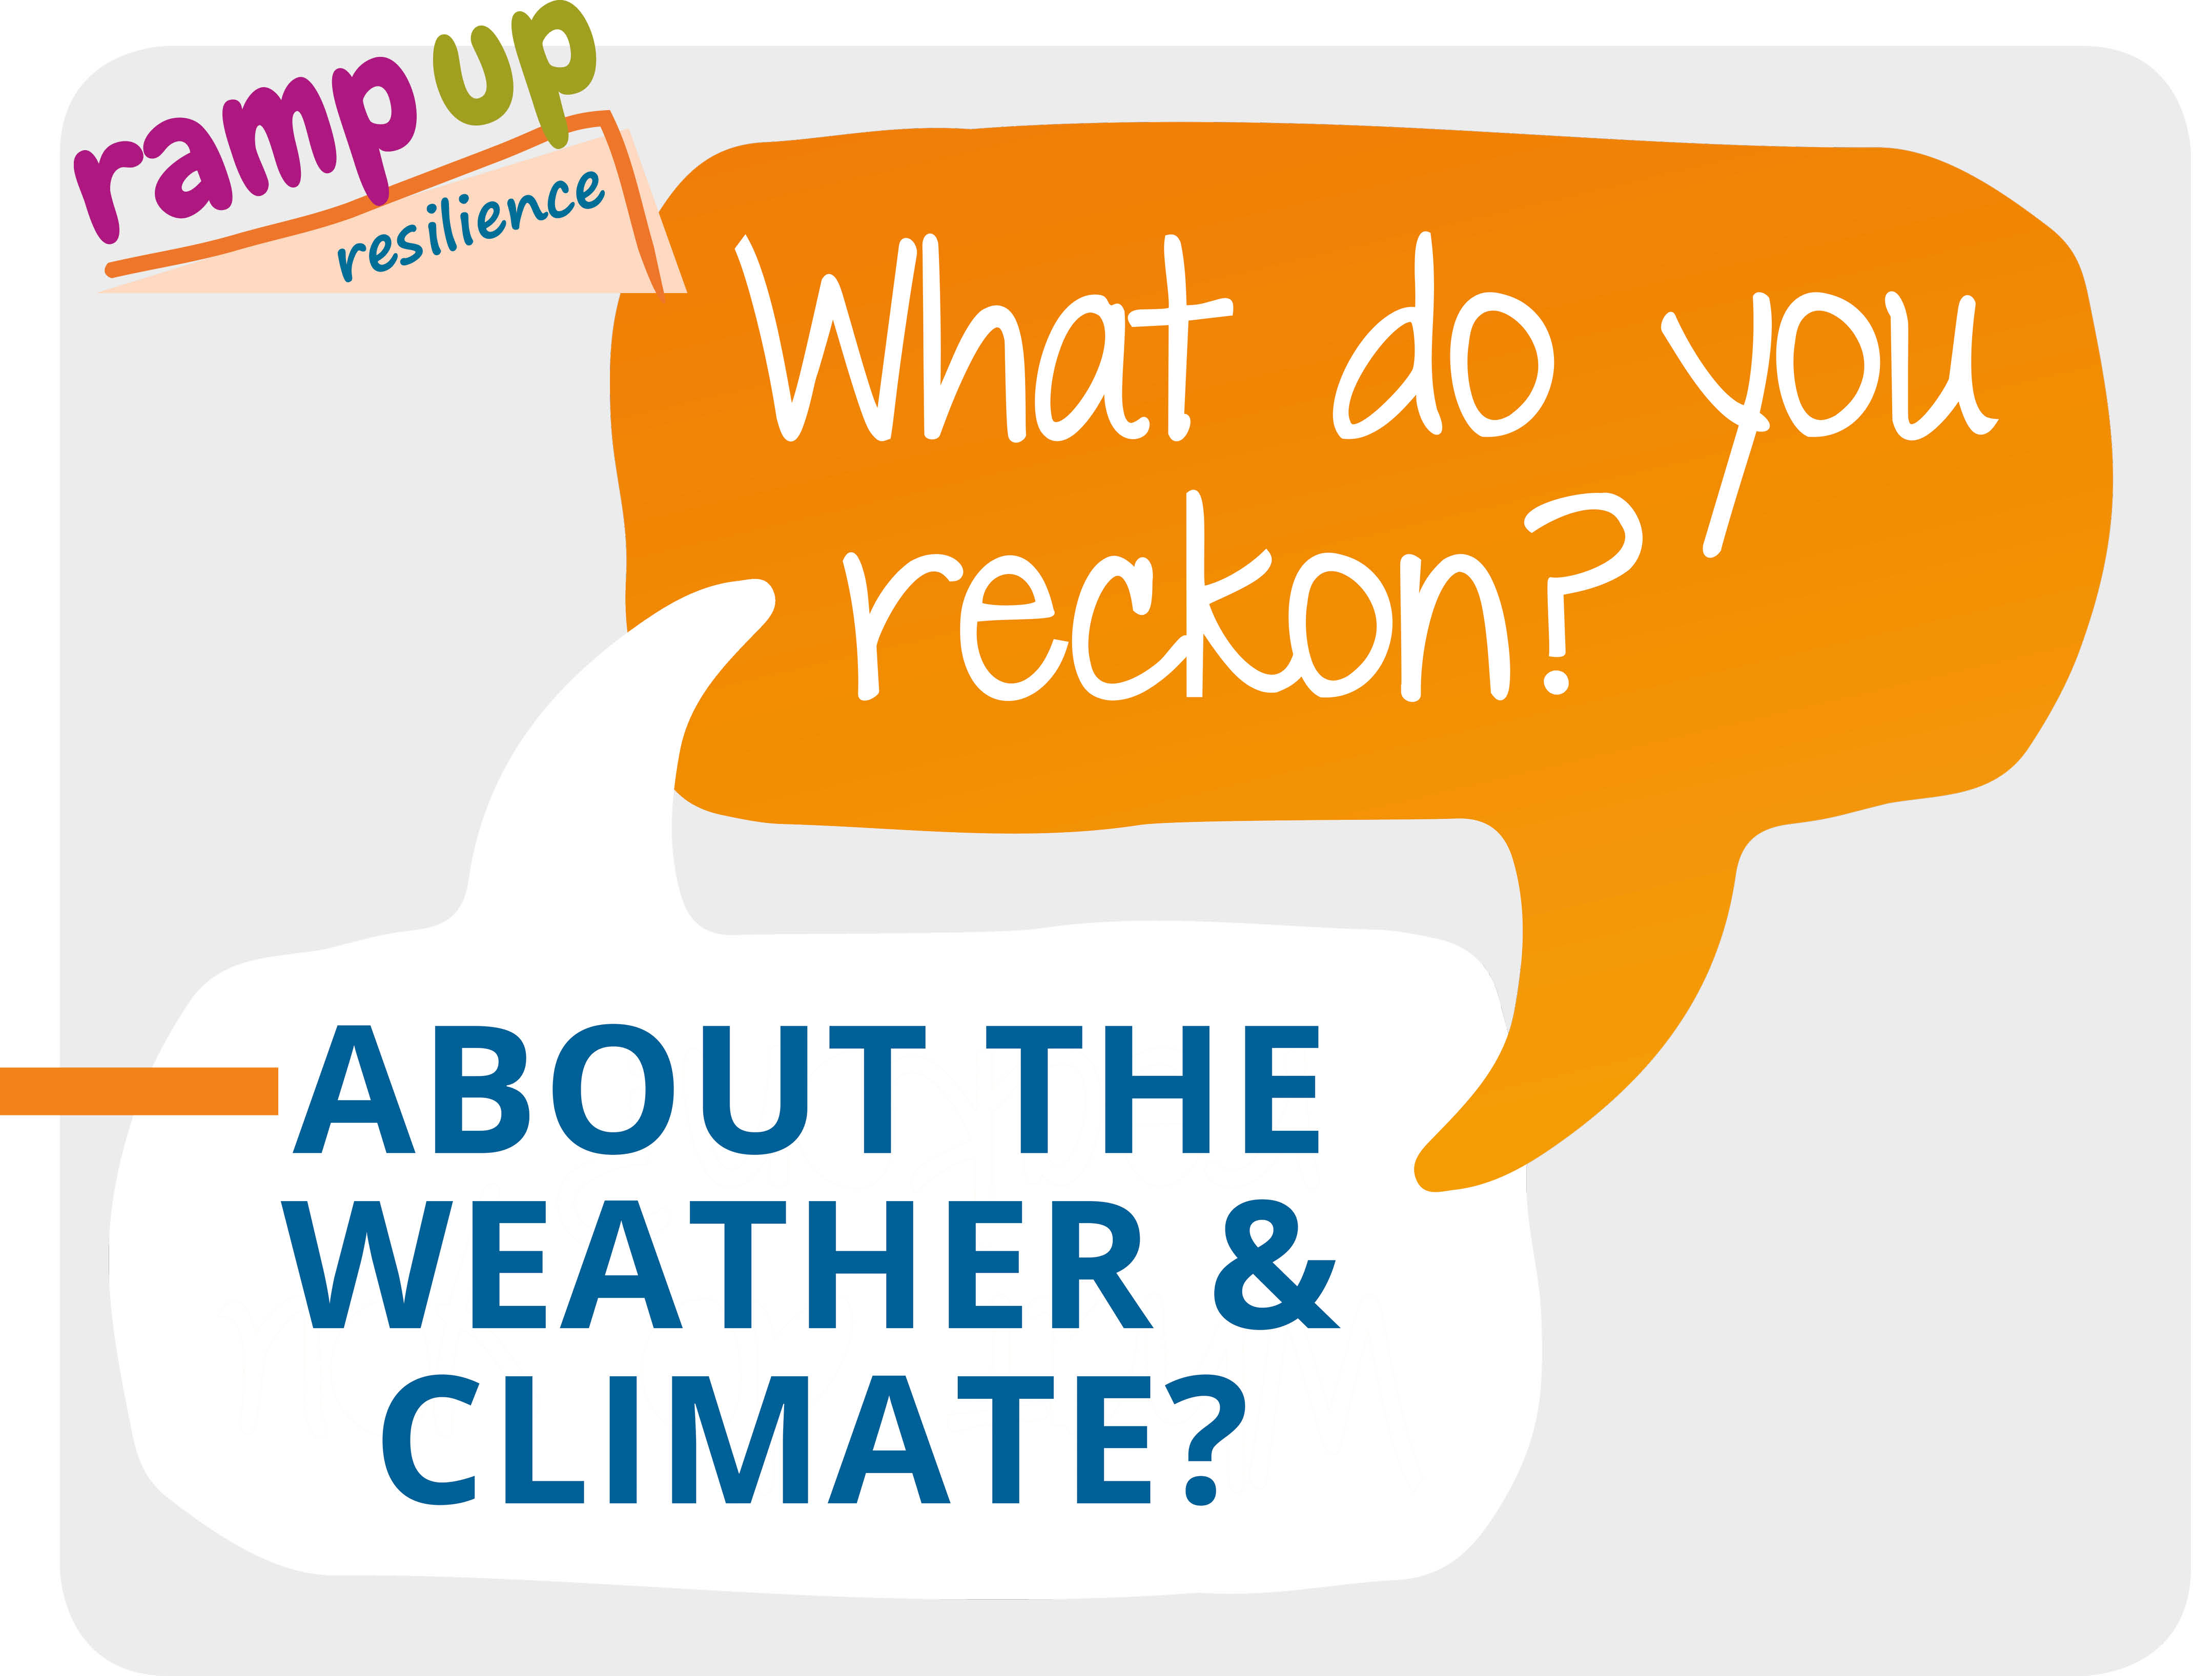 Weather and climate – tell us what you reckon!